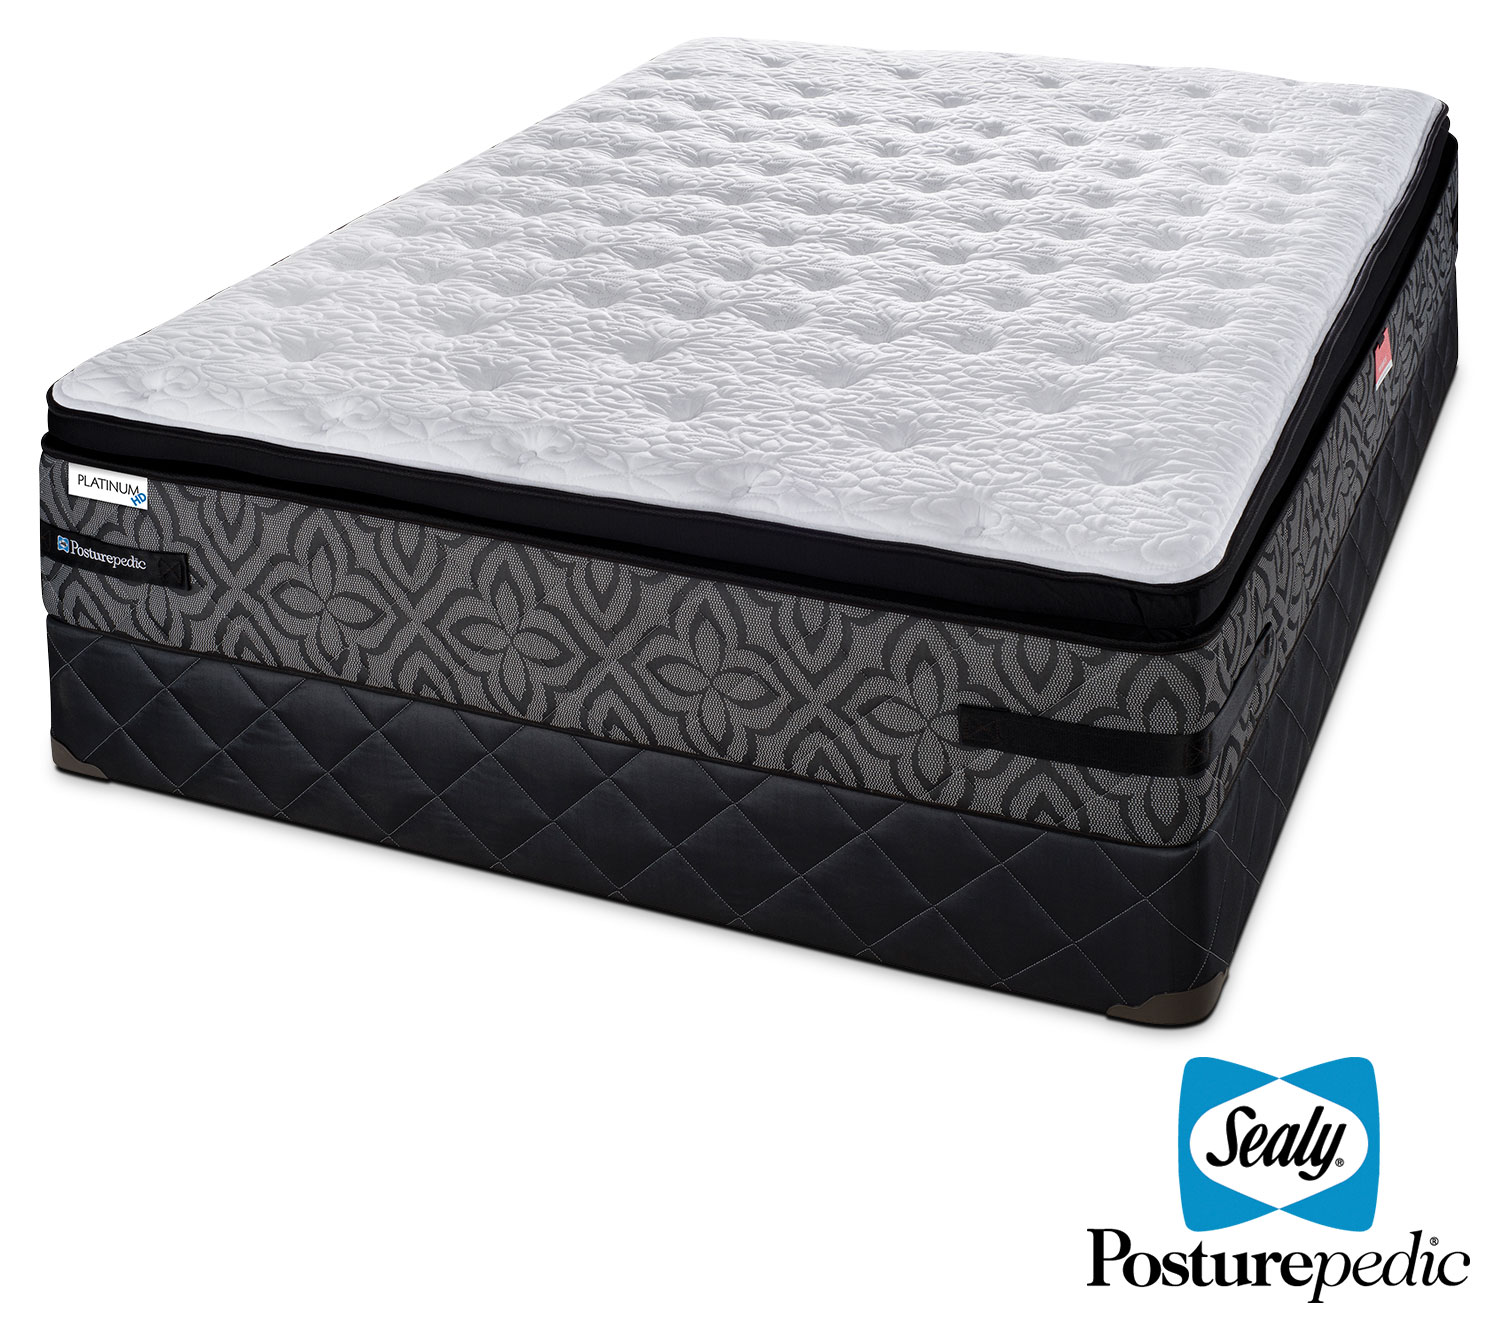 Sealy Posturepedic 2 K Firm Queen Mattress and Boxspring Set